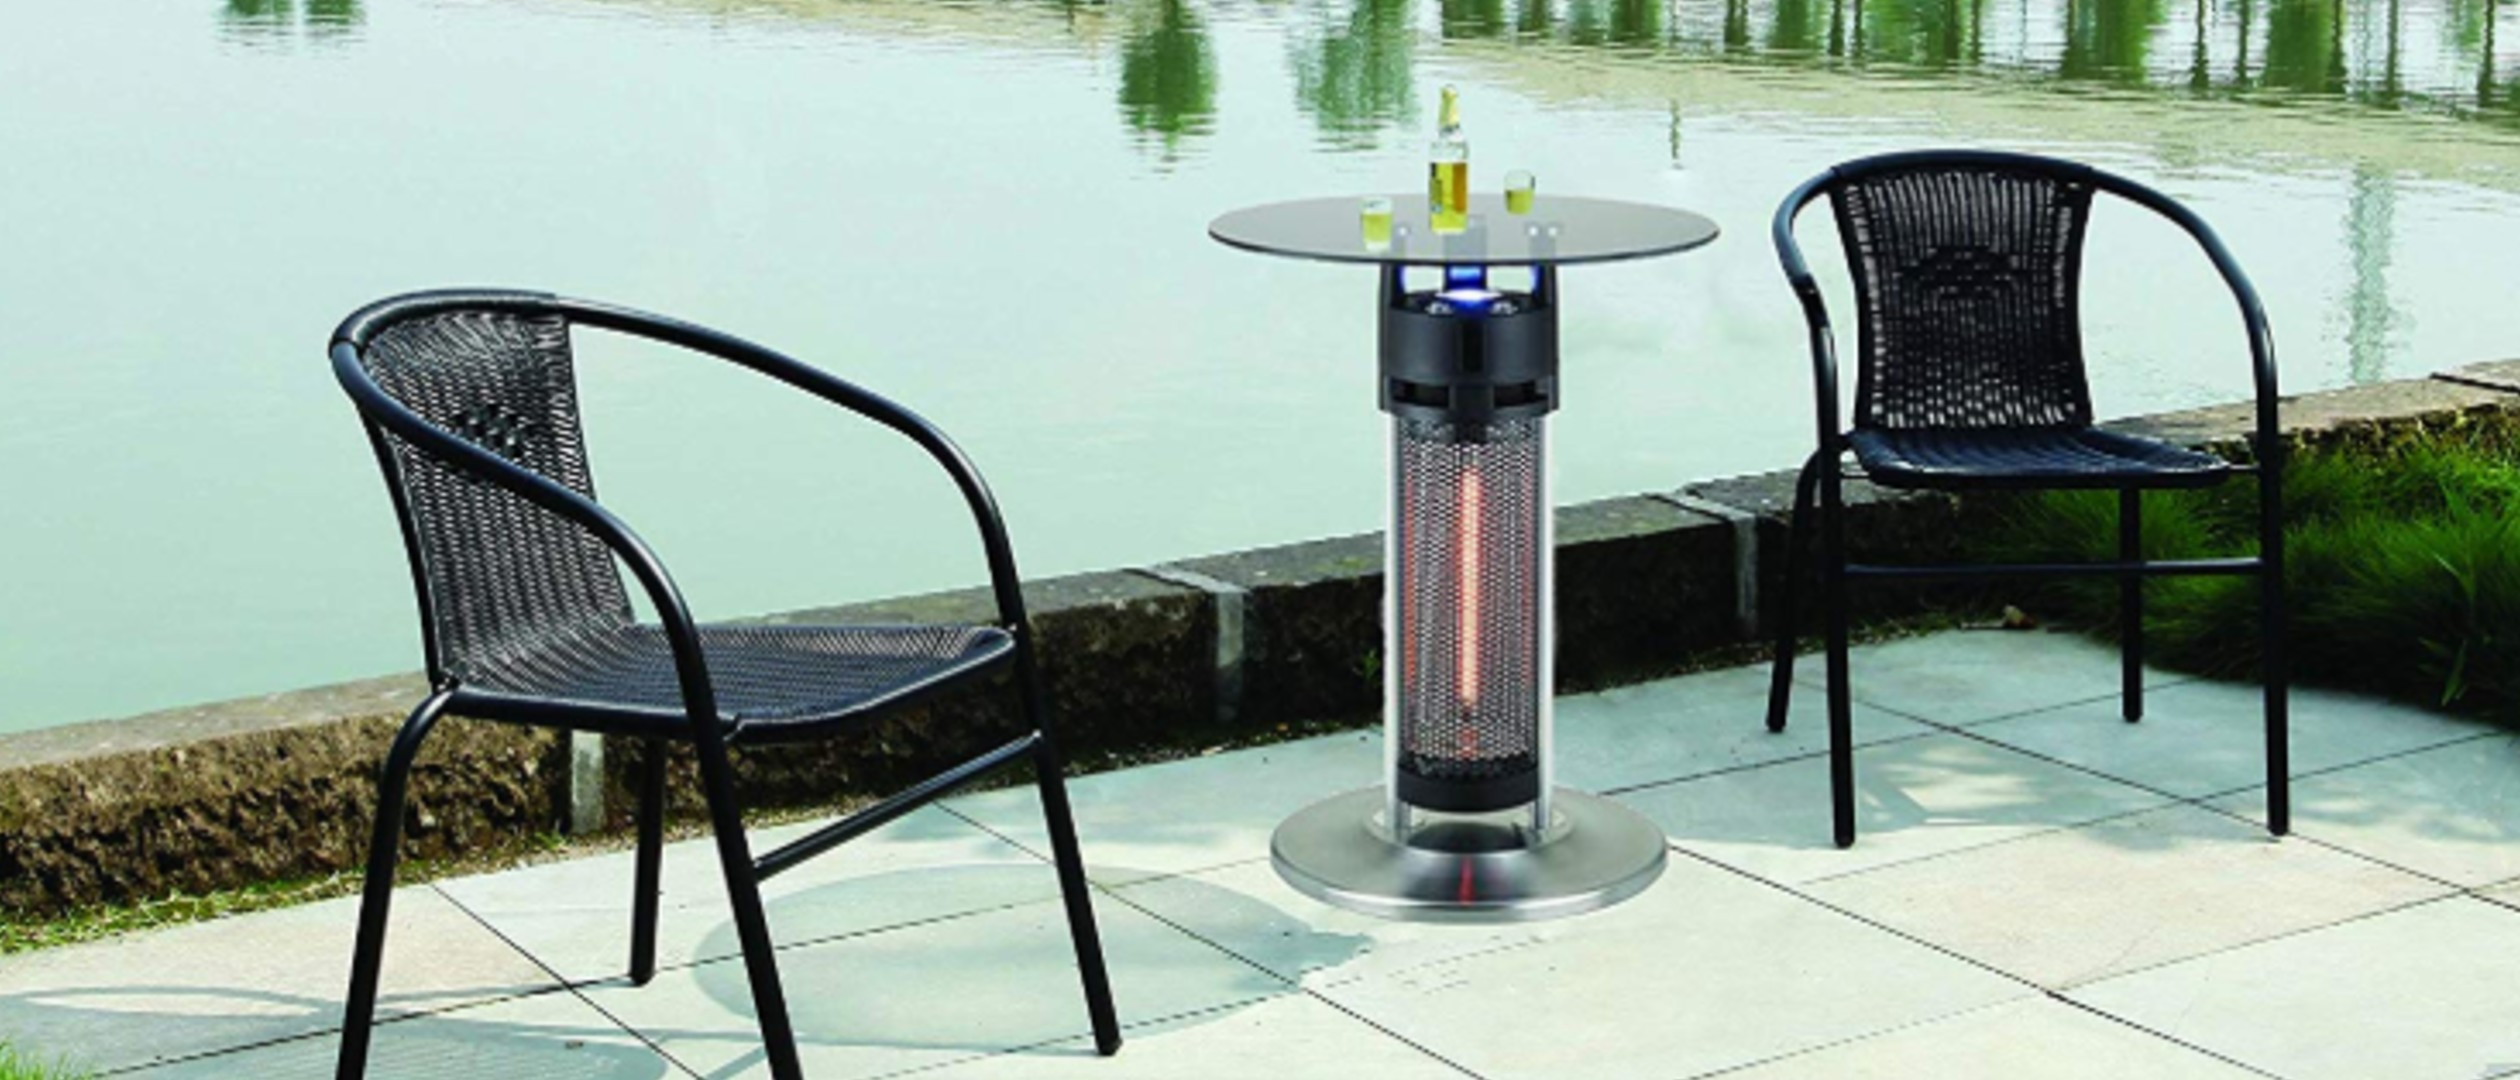 Tabletop Electric Patio Heater Review